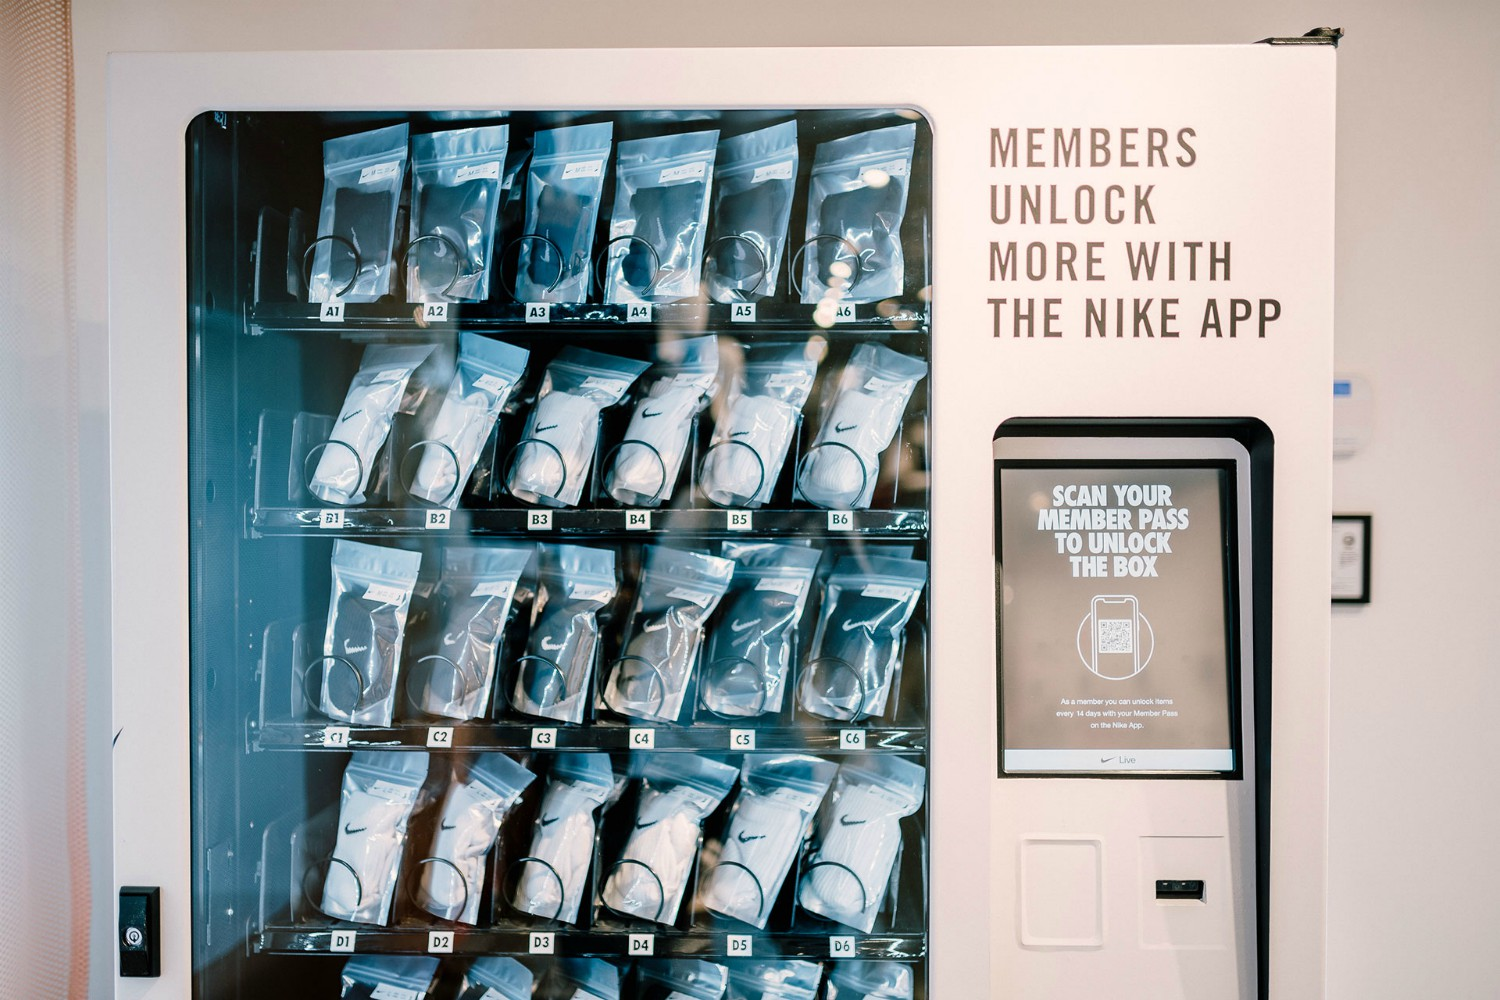 NikePlus members can redeem product or rewards by using their member pass every two weeks at the NikePlus Unlock Box (essentially a digital vending machine).